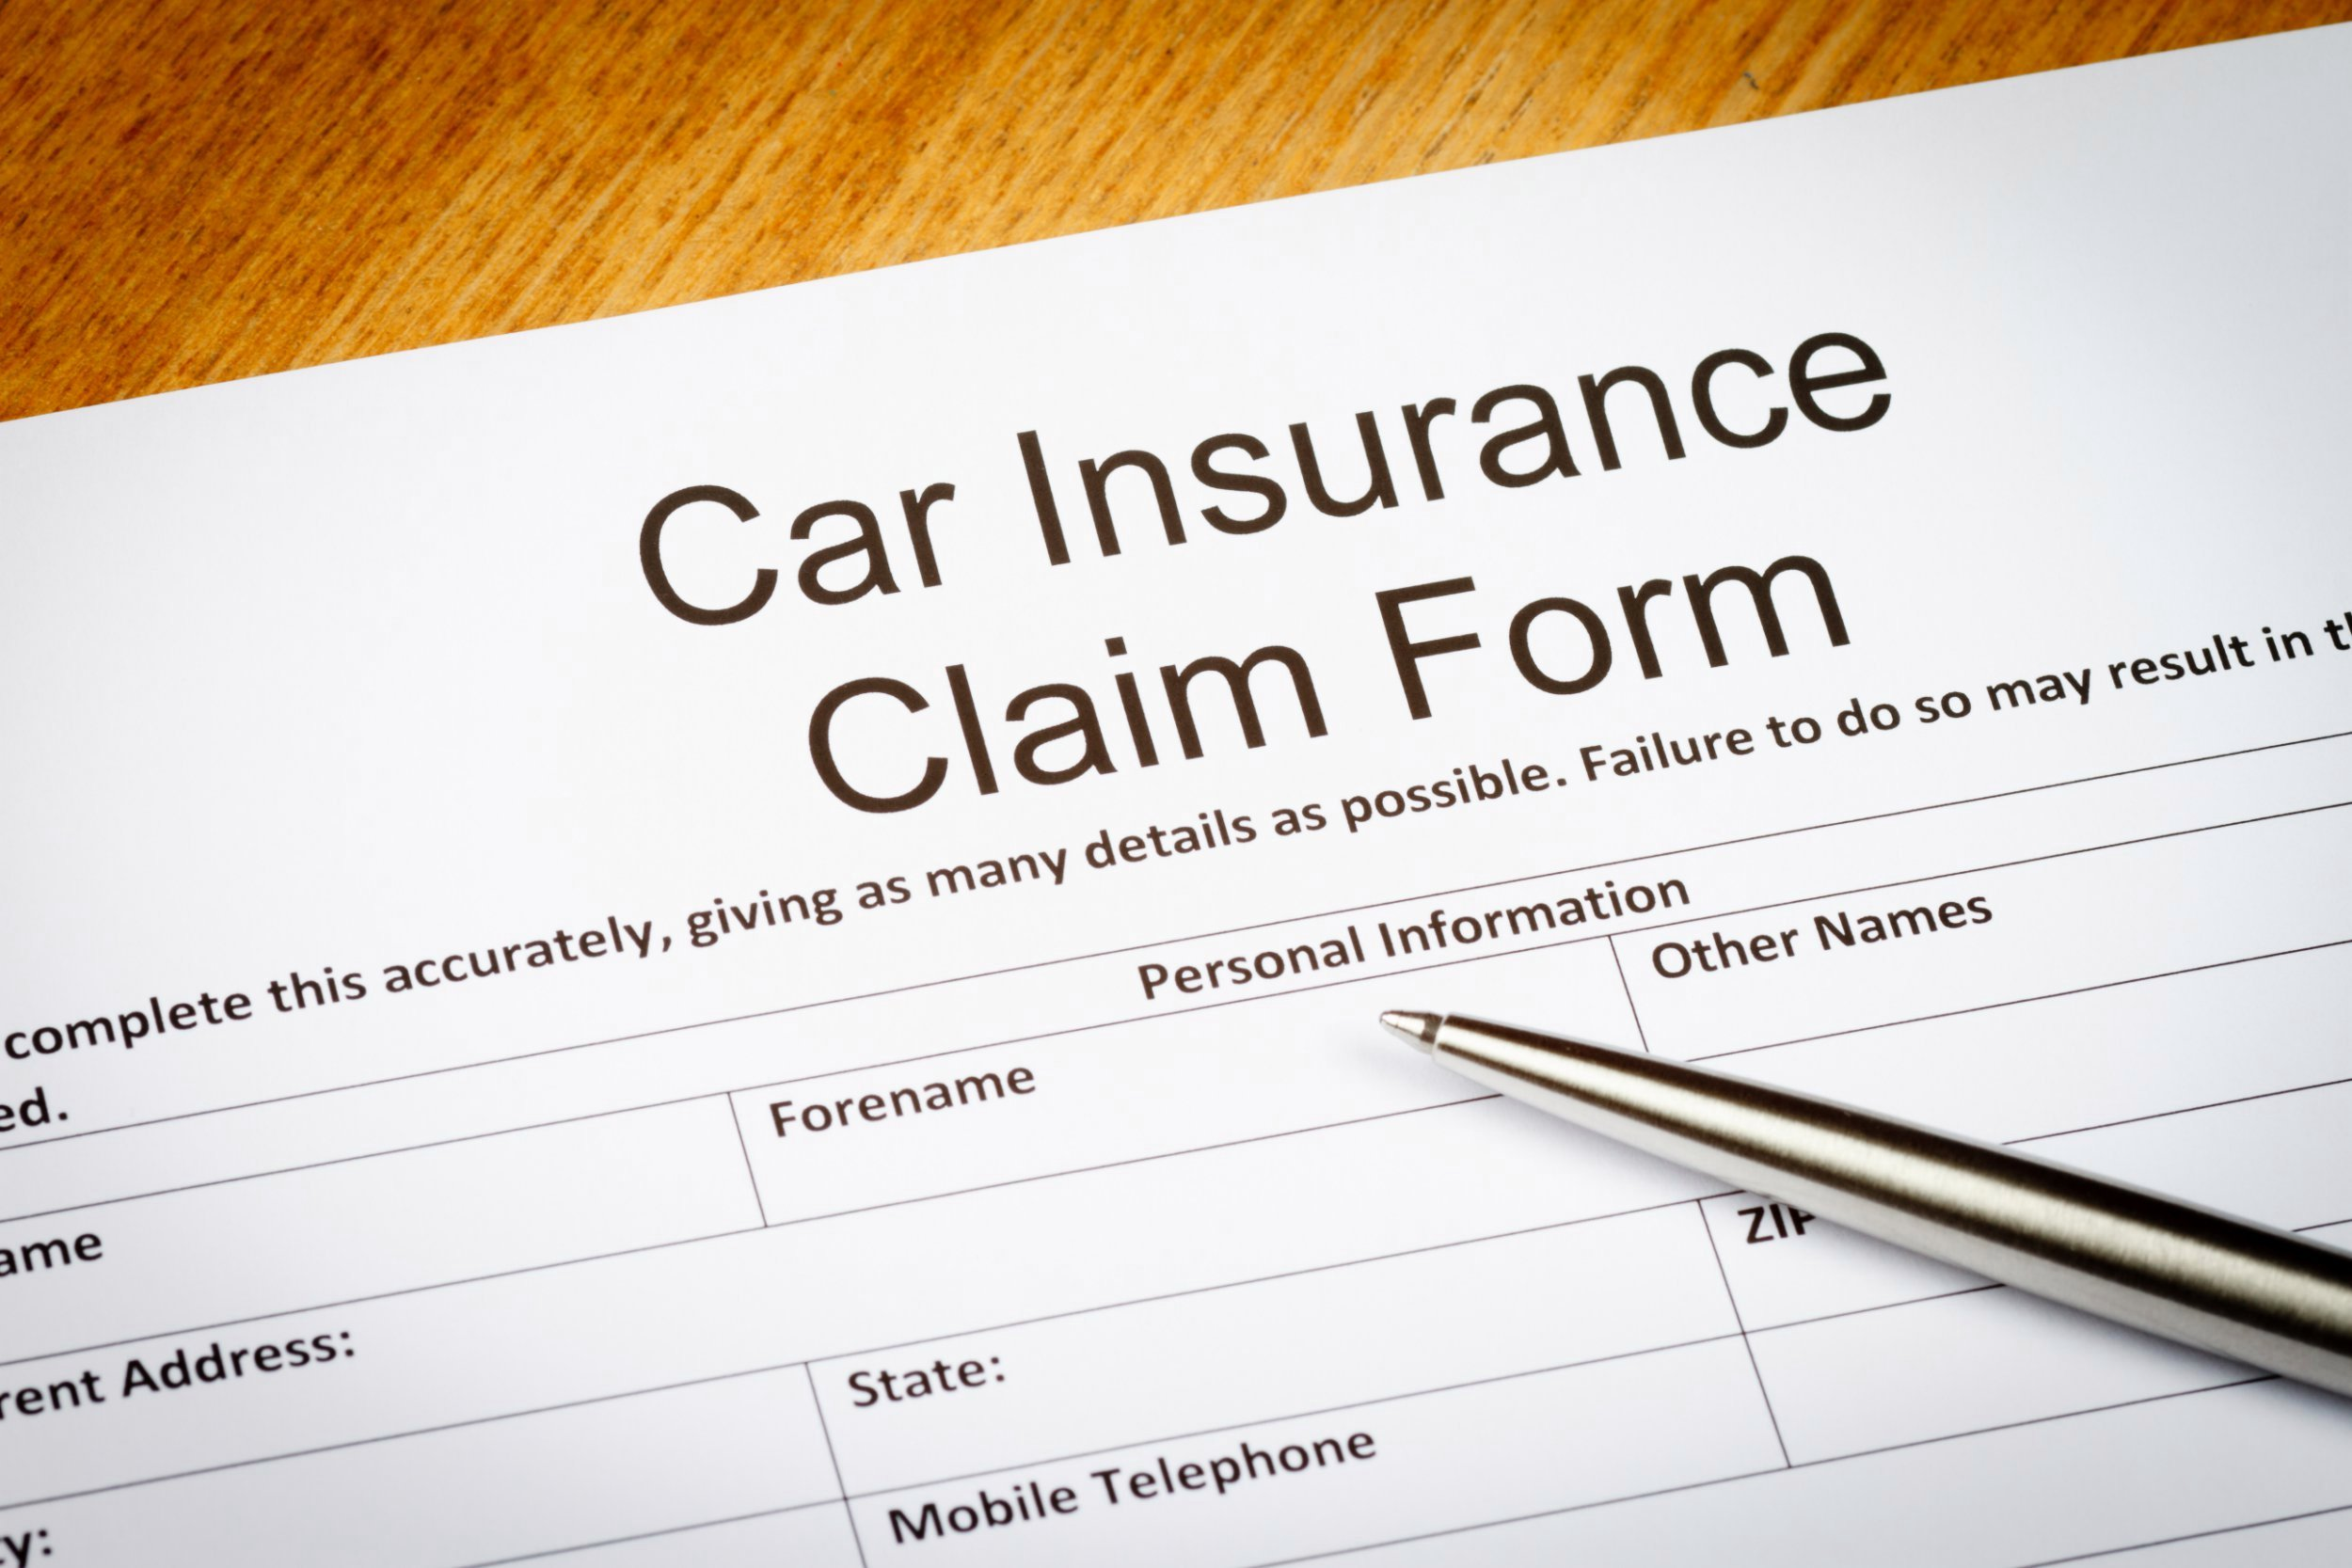 Best Way To Fill Car Insurance Claims